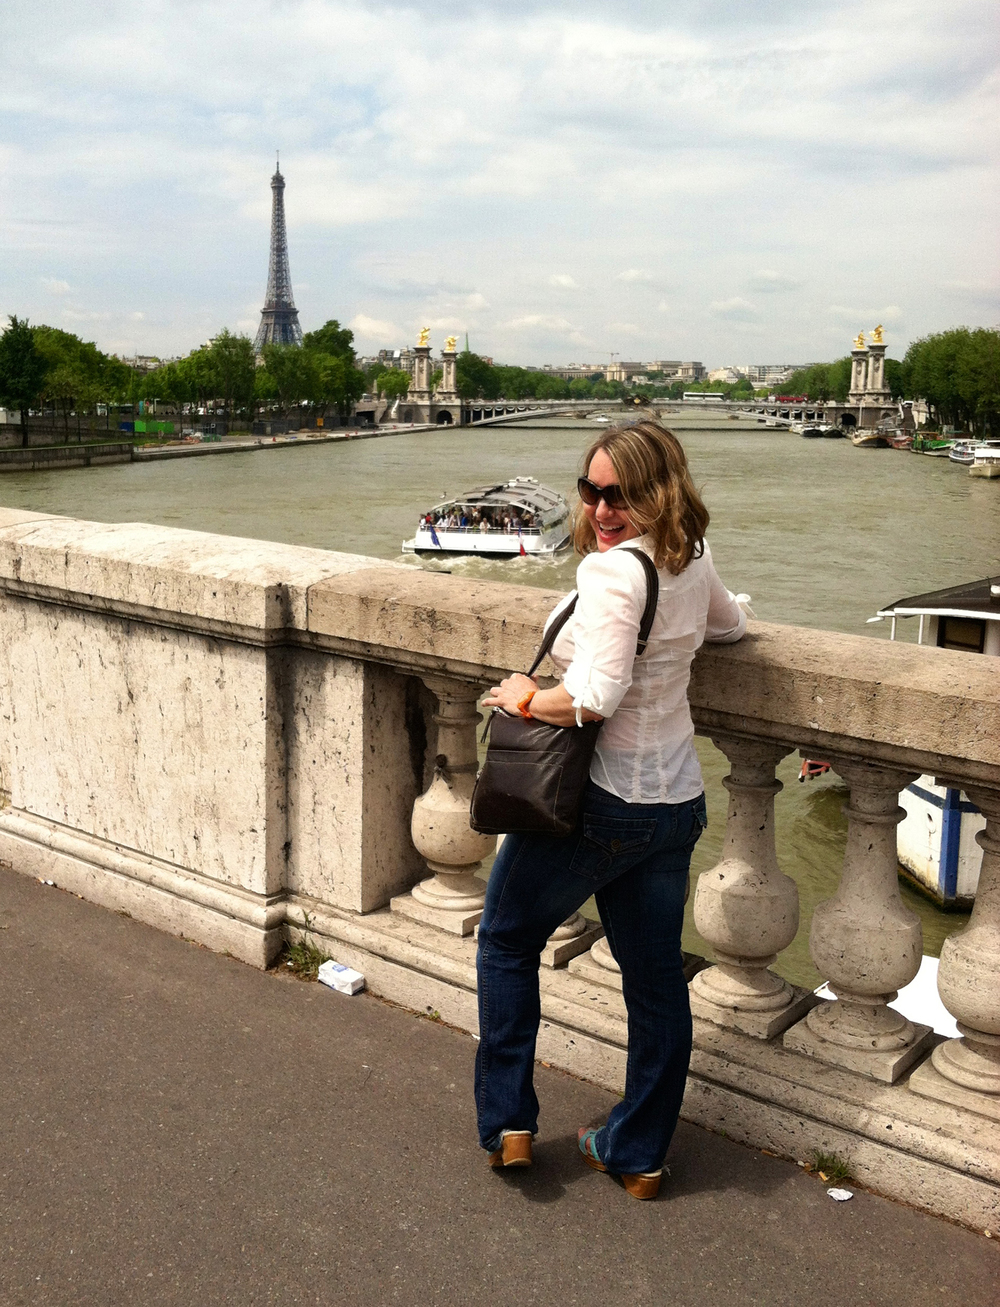 me_Paris_bridge_eiffel-tower_Allyn_Howard.jpg